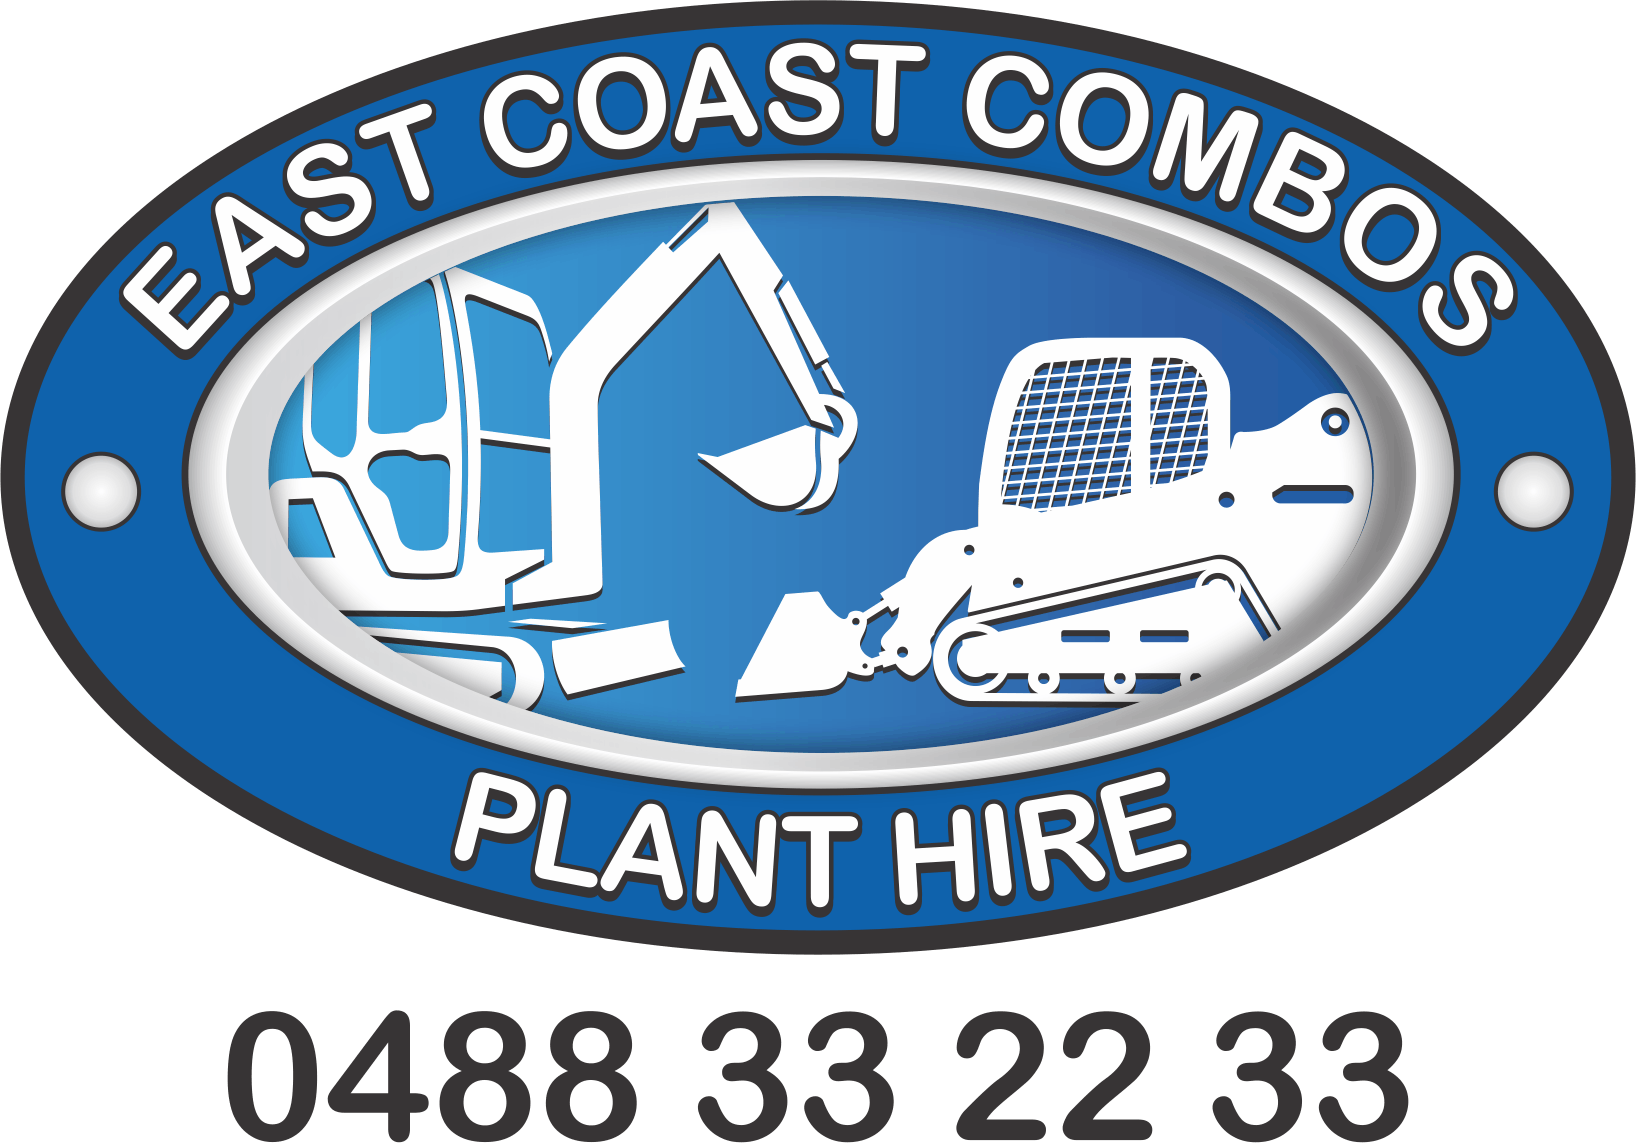 East Coast Combos Plant hire